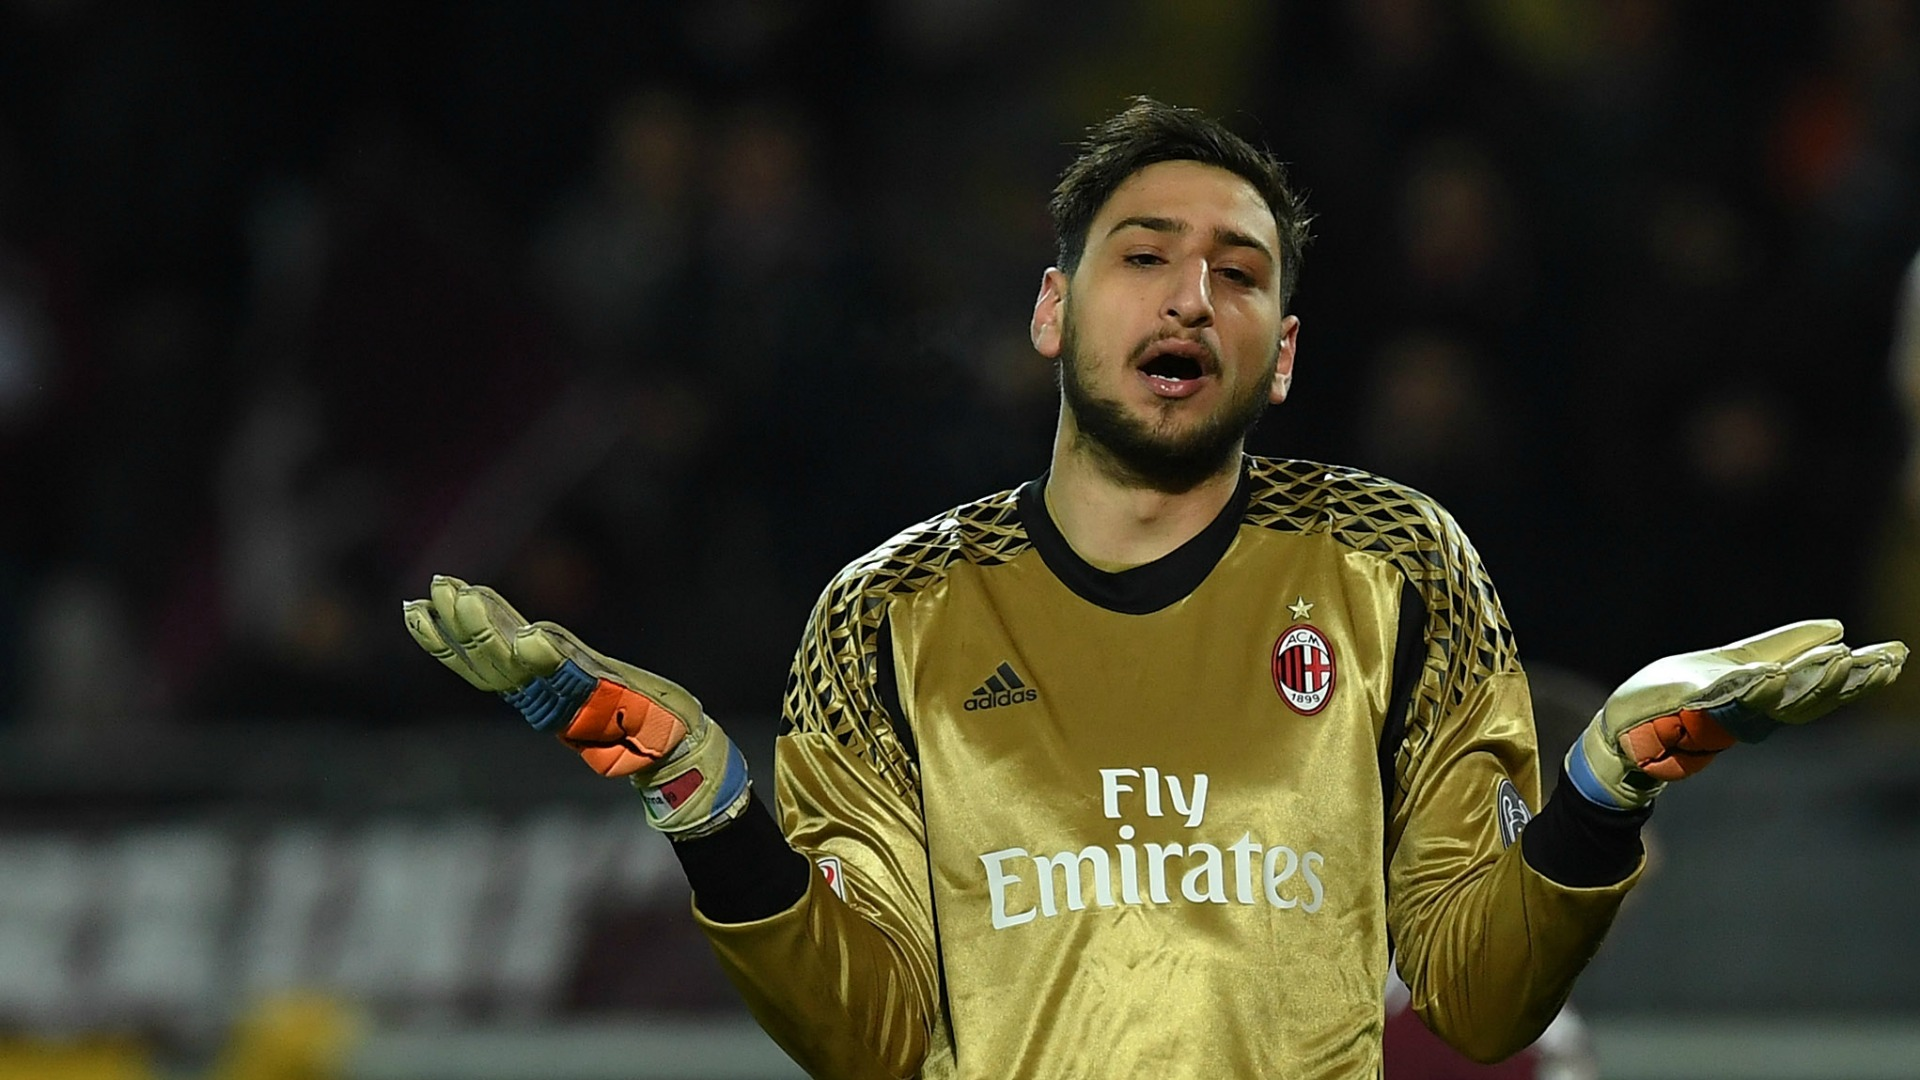 Donnarumma,70m Euros? Has the world not gone wacky enough?